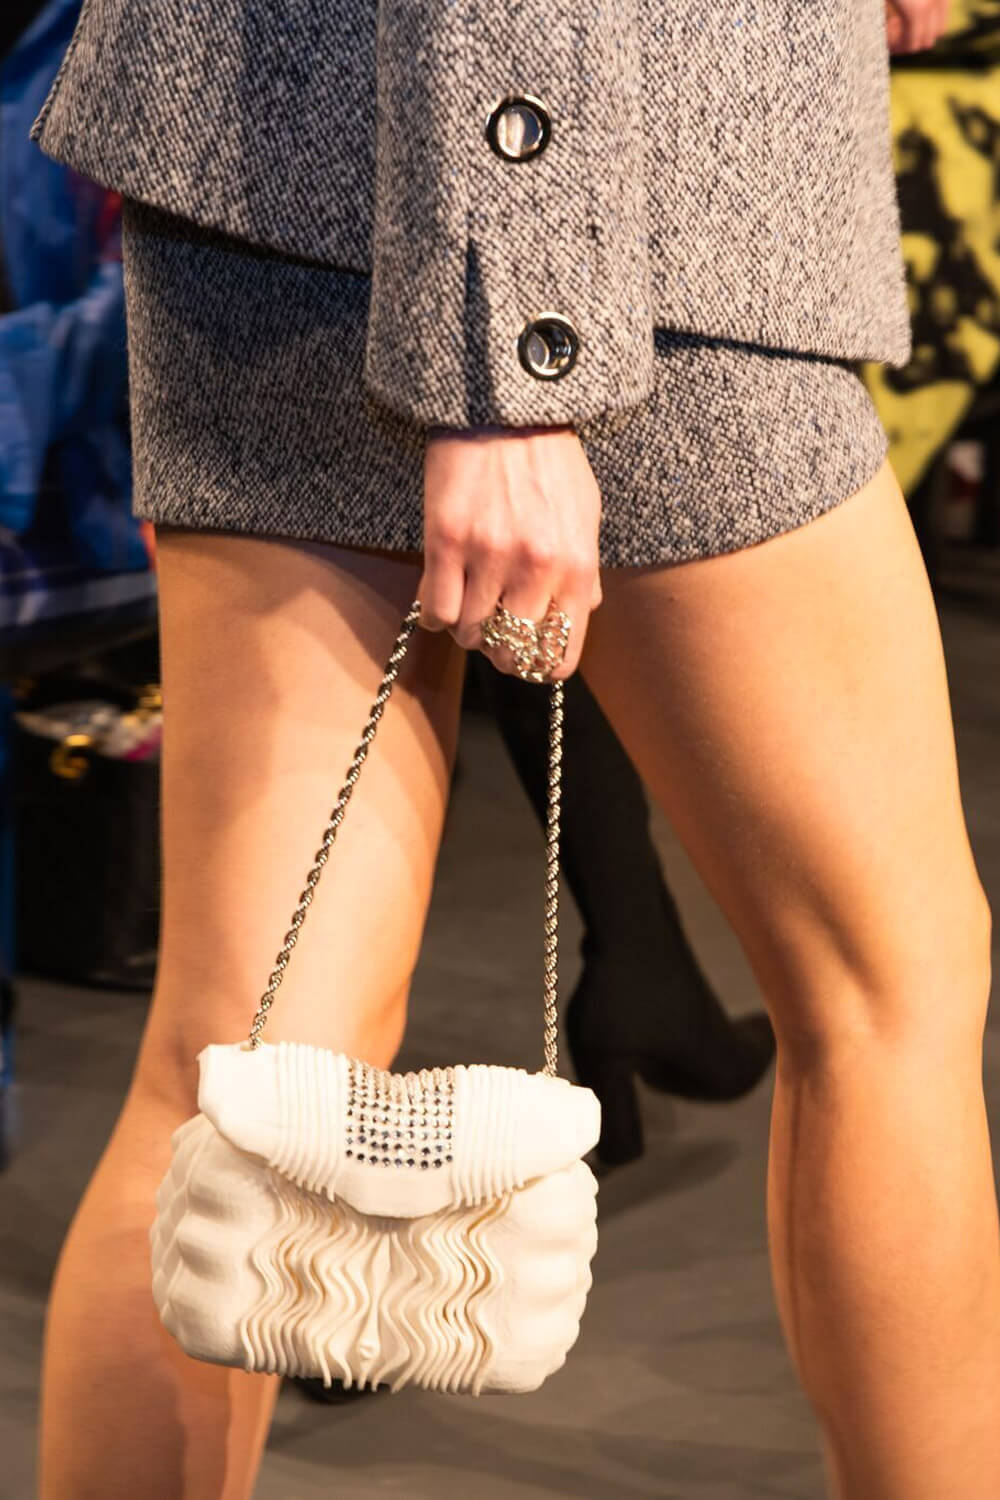 Julia Daviy 3D Printed Sustainable Luxury Bag Collection